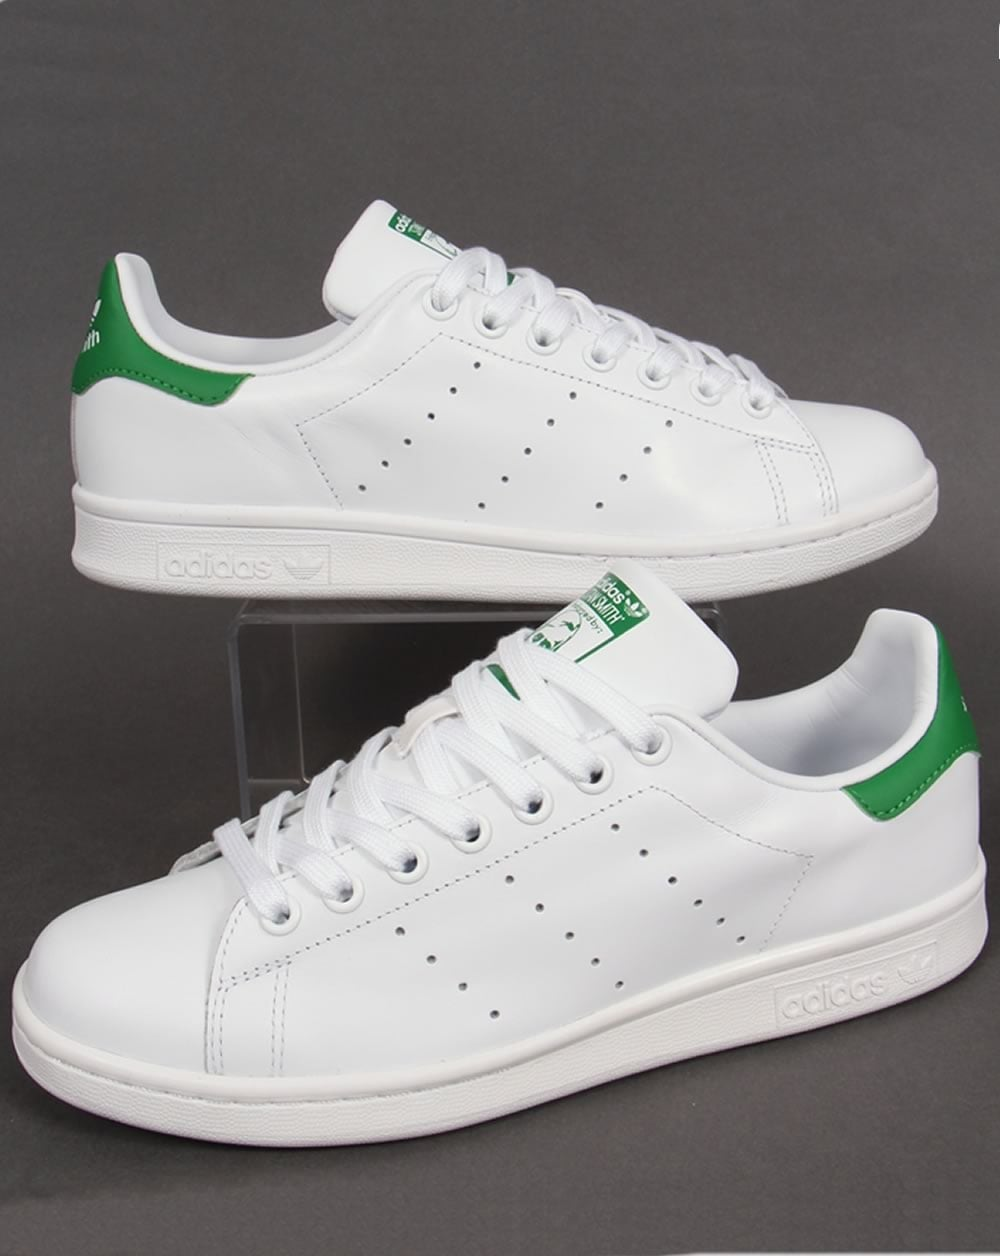 52a1f1f14b0 adidas Trainers Adidas Stan Smith Trainers White Green